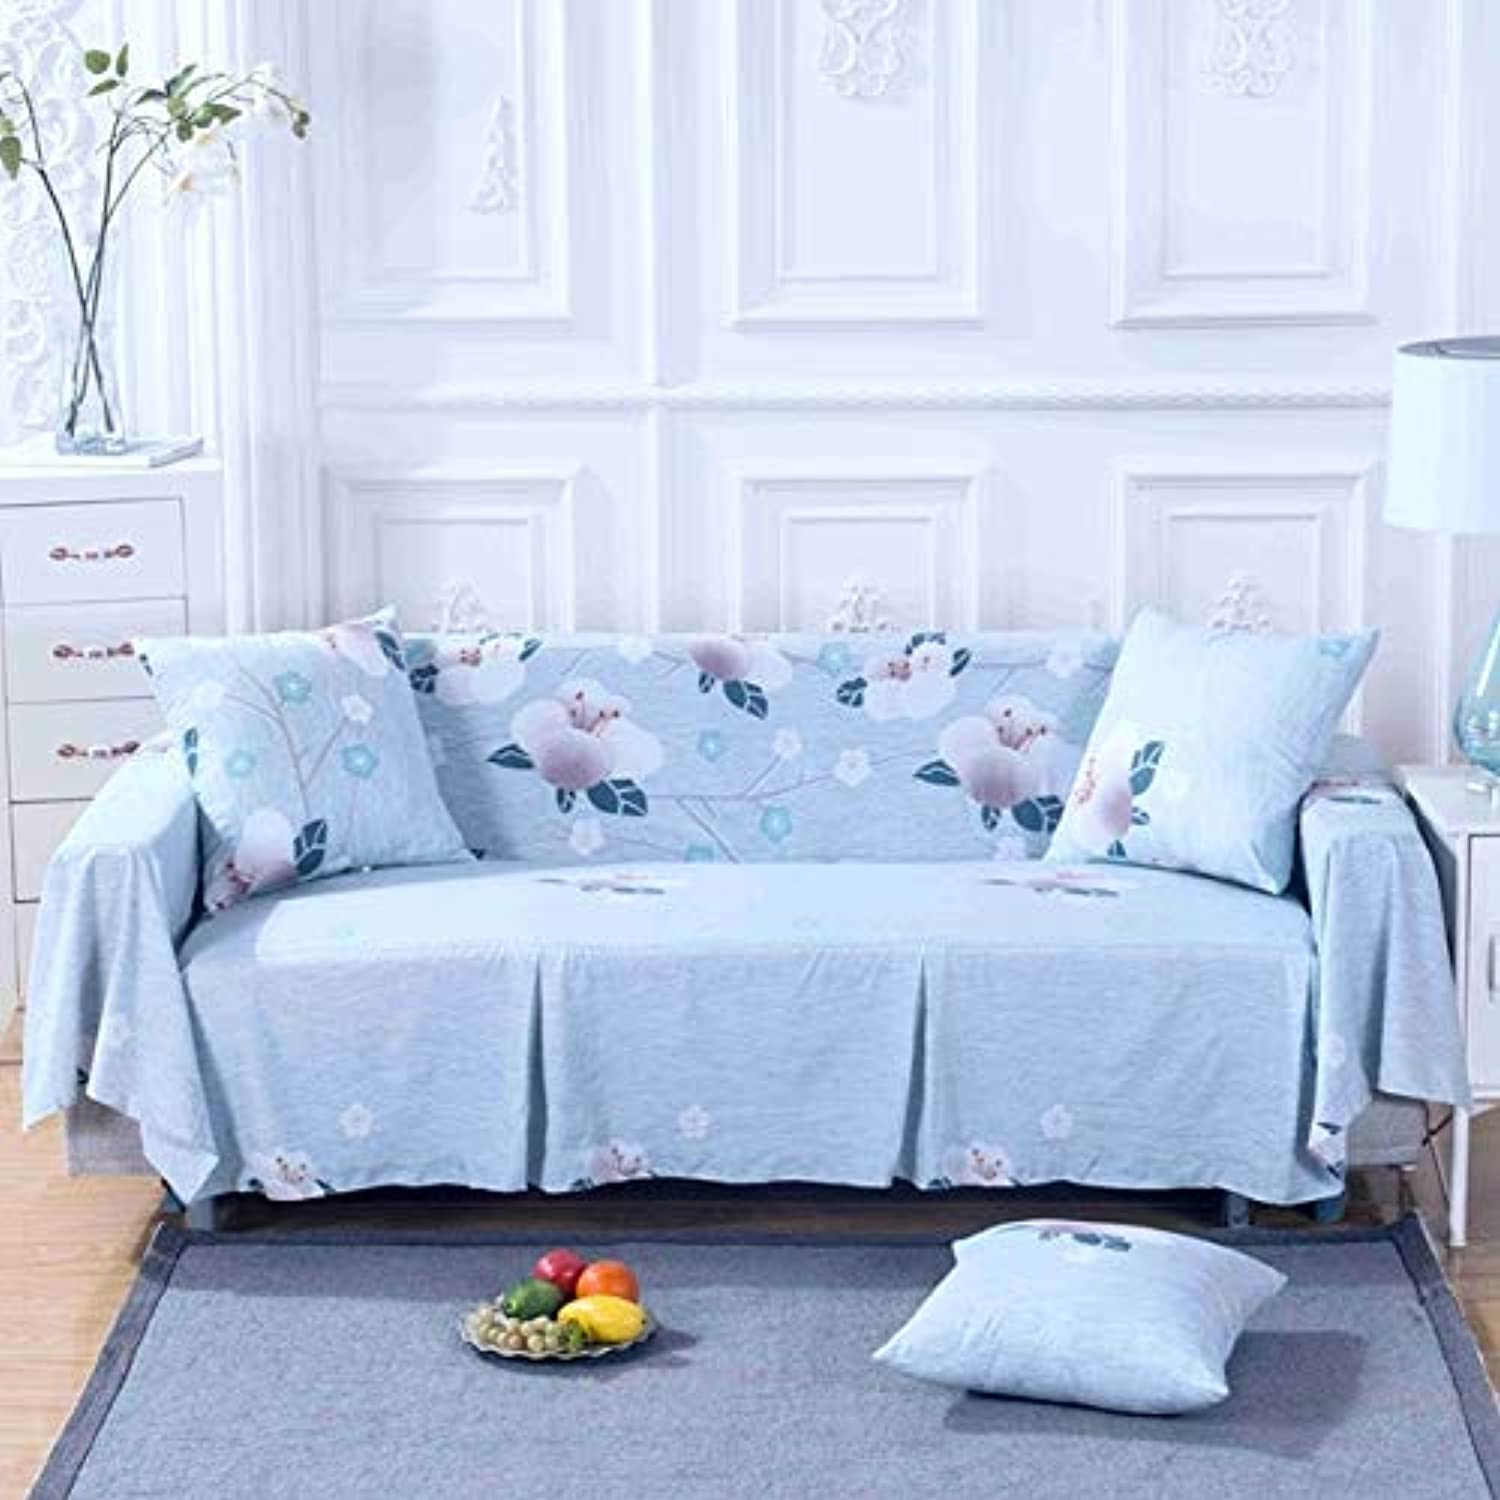 SunnyRain 1-Piece I Shaped Sofa Cover Sectional Sofa Covers Stretch Slipcover Couch Cover Sofa Predector   124, Double Seat Sofa